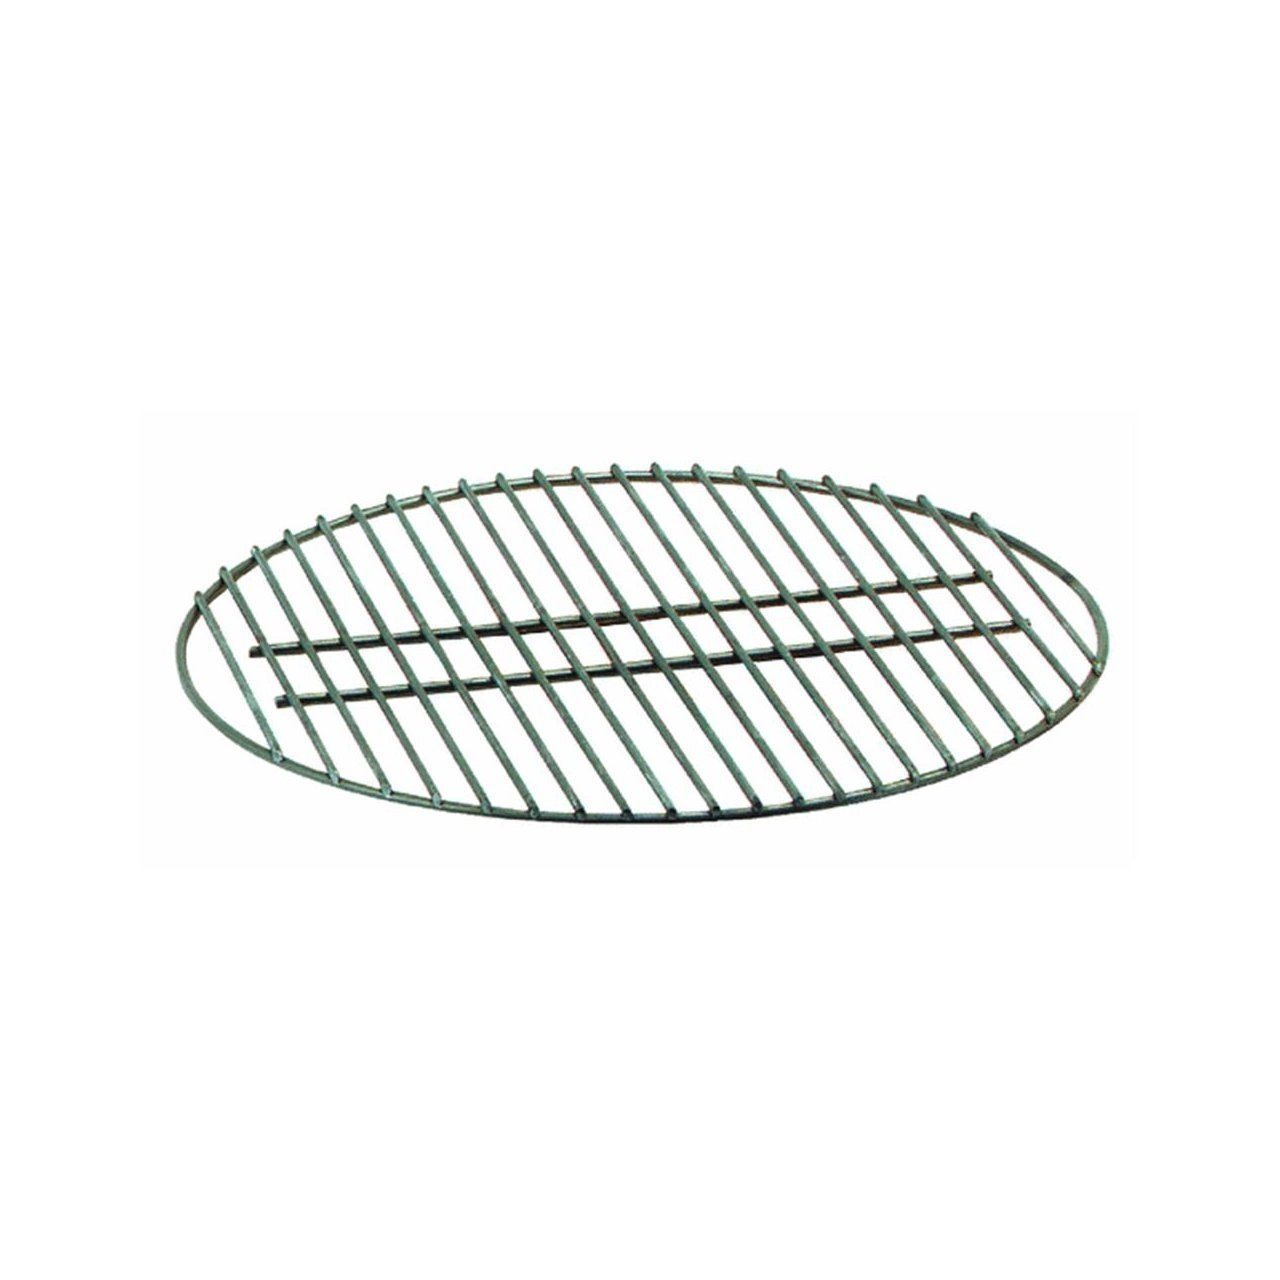 "CHARCOAL GRATE FOR 22"" GRILLS"